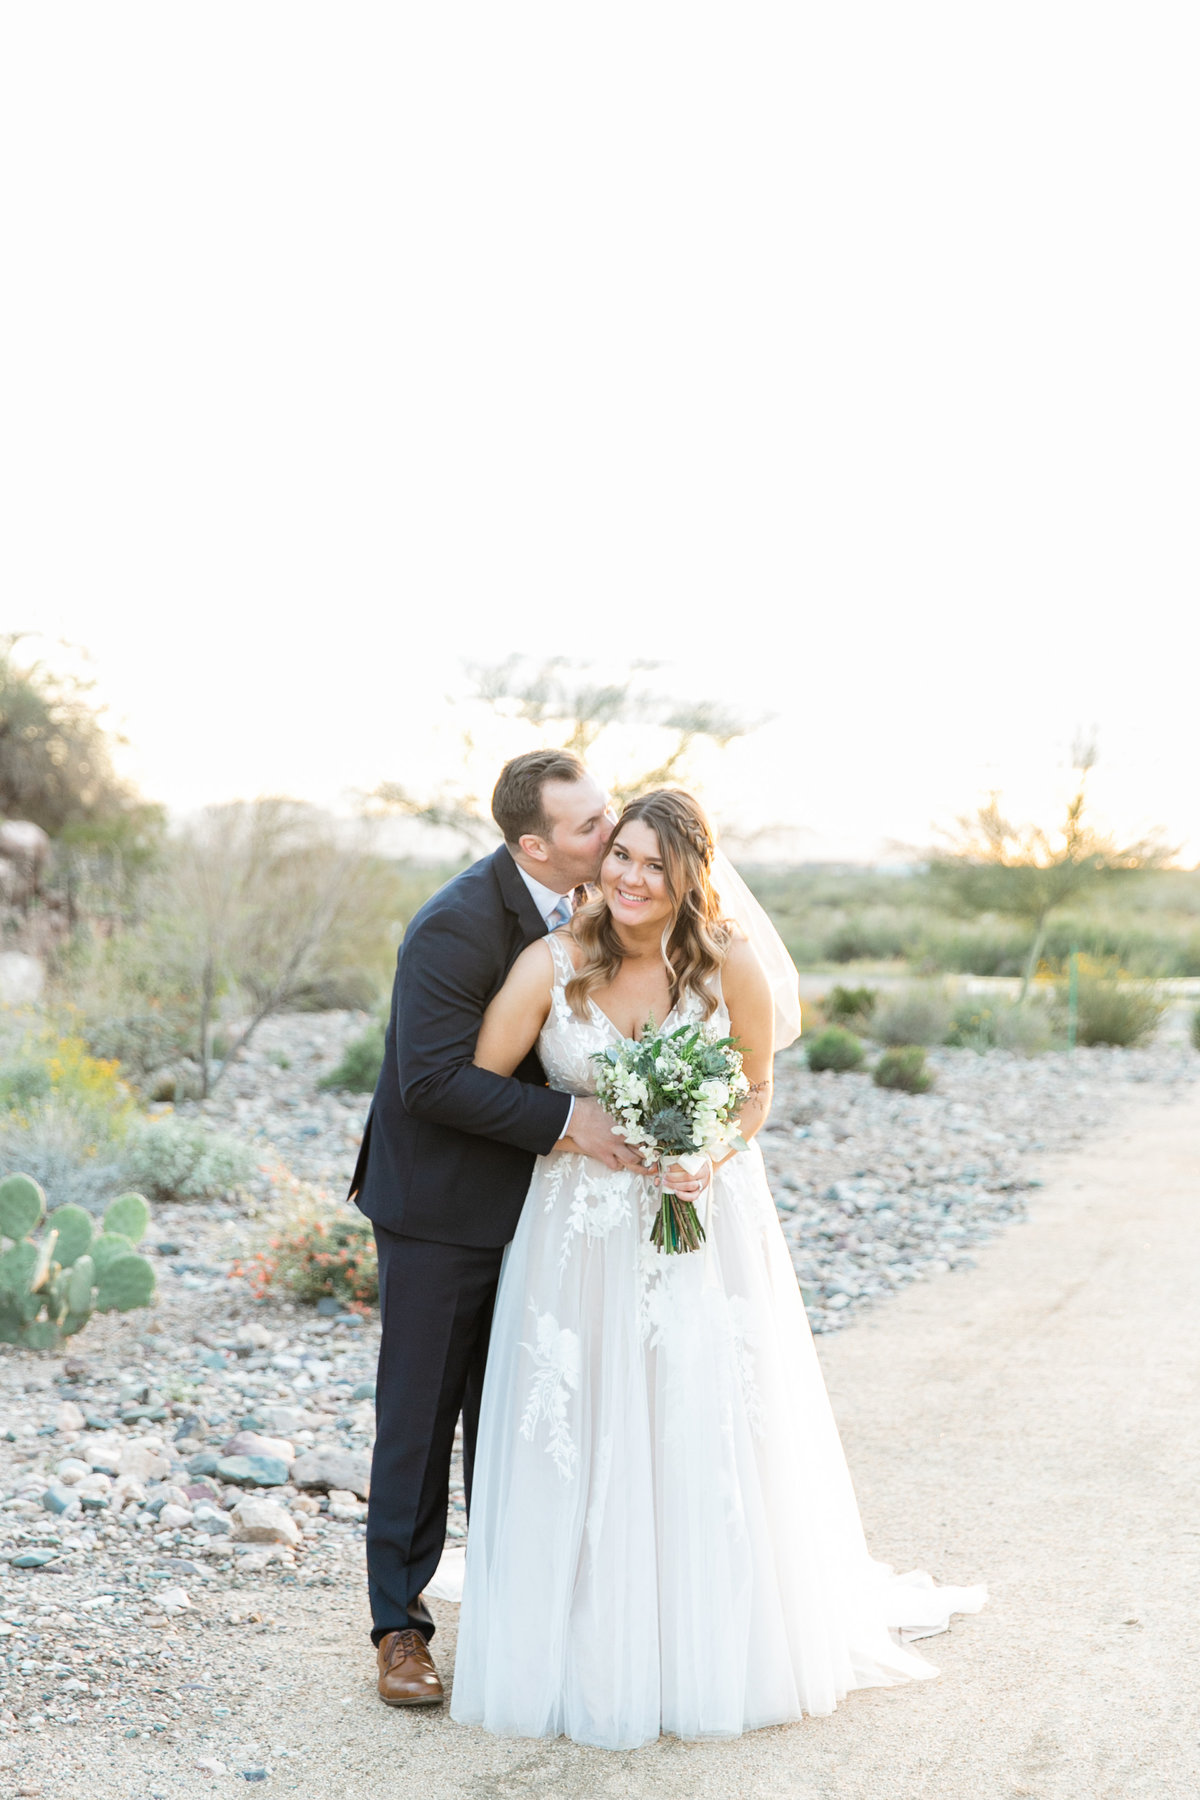 Karlie Colleen Photography - Arizona Backyard wedding - Brittney & Josh-223